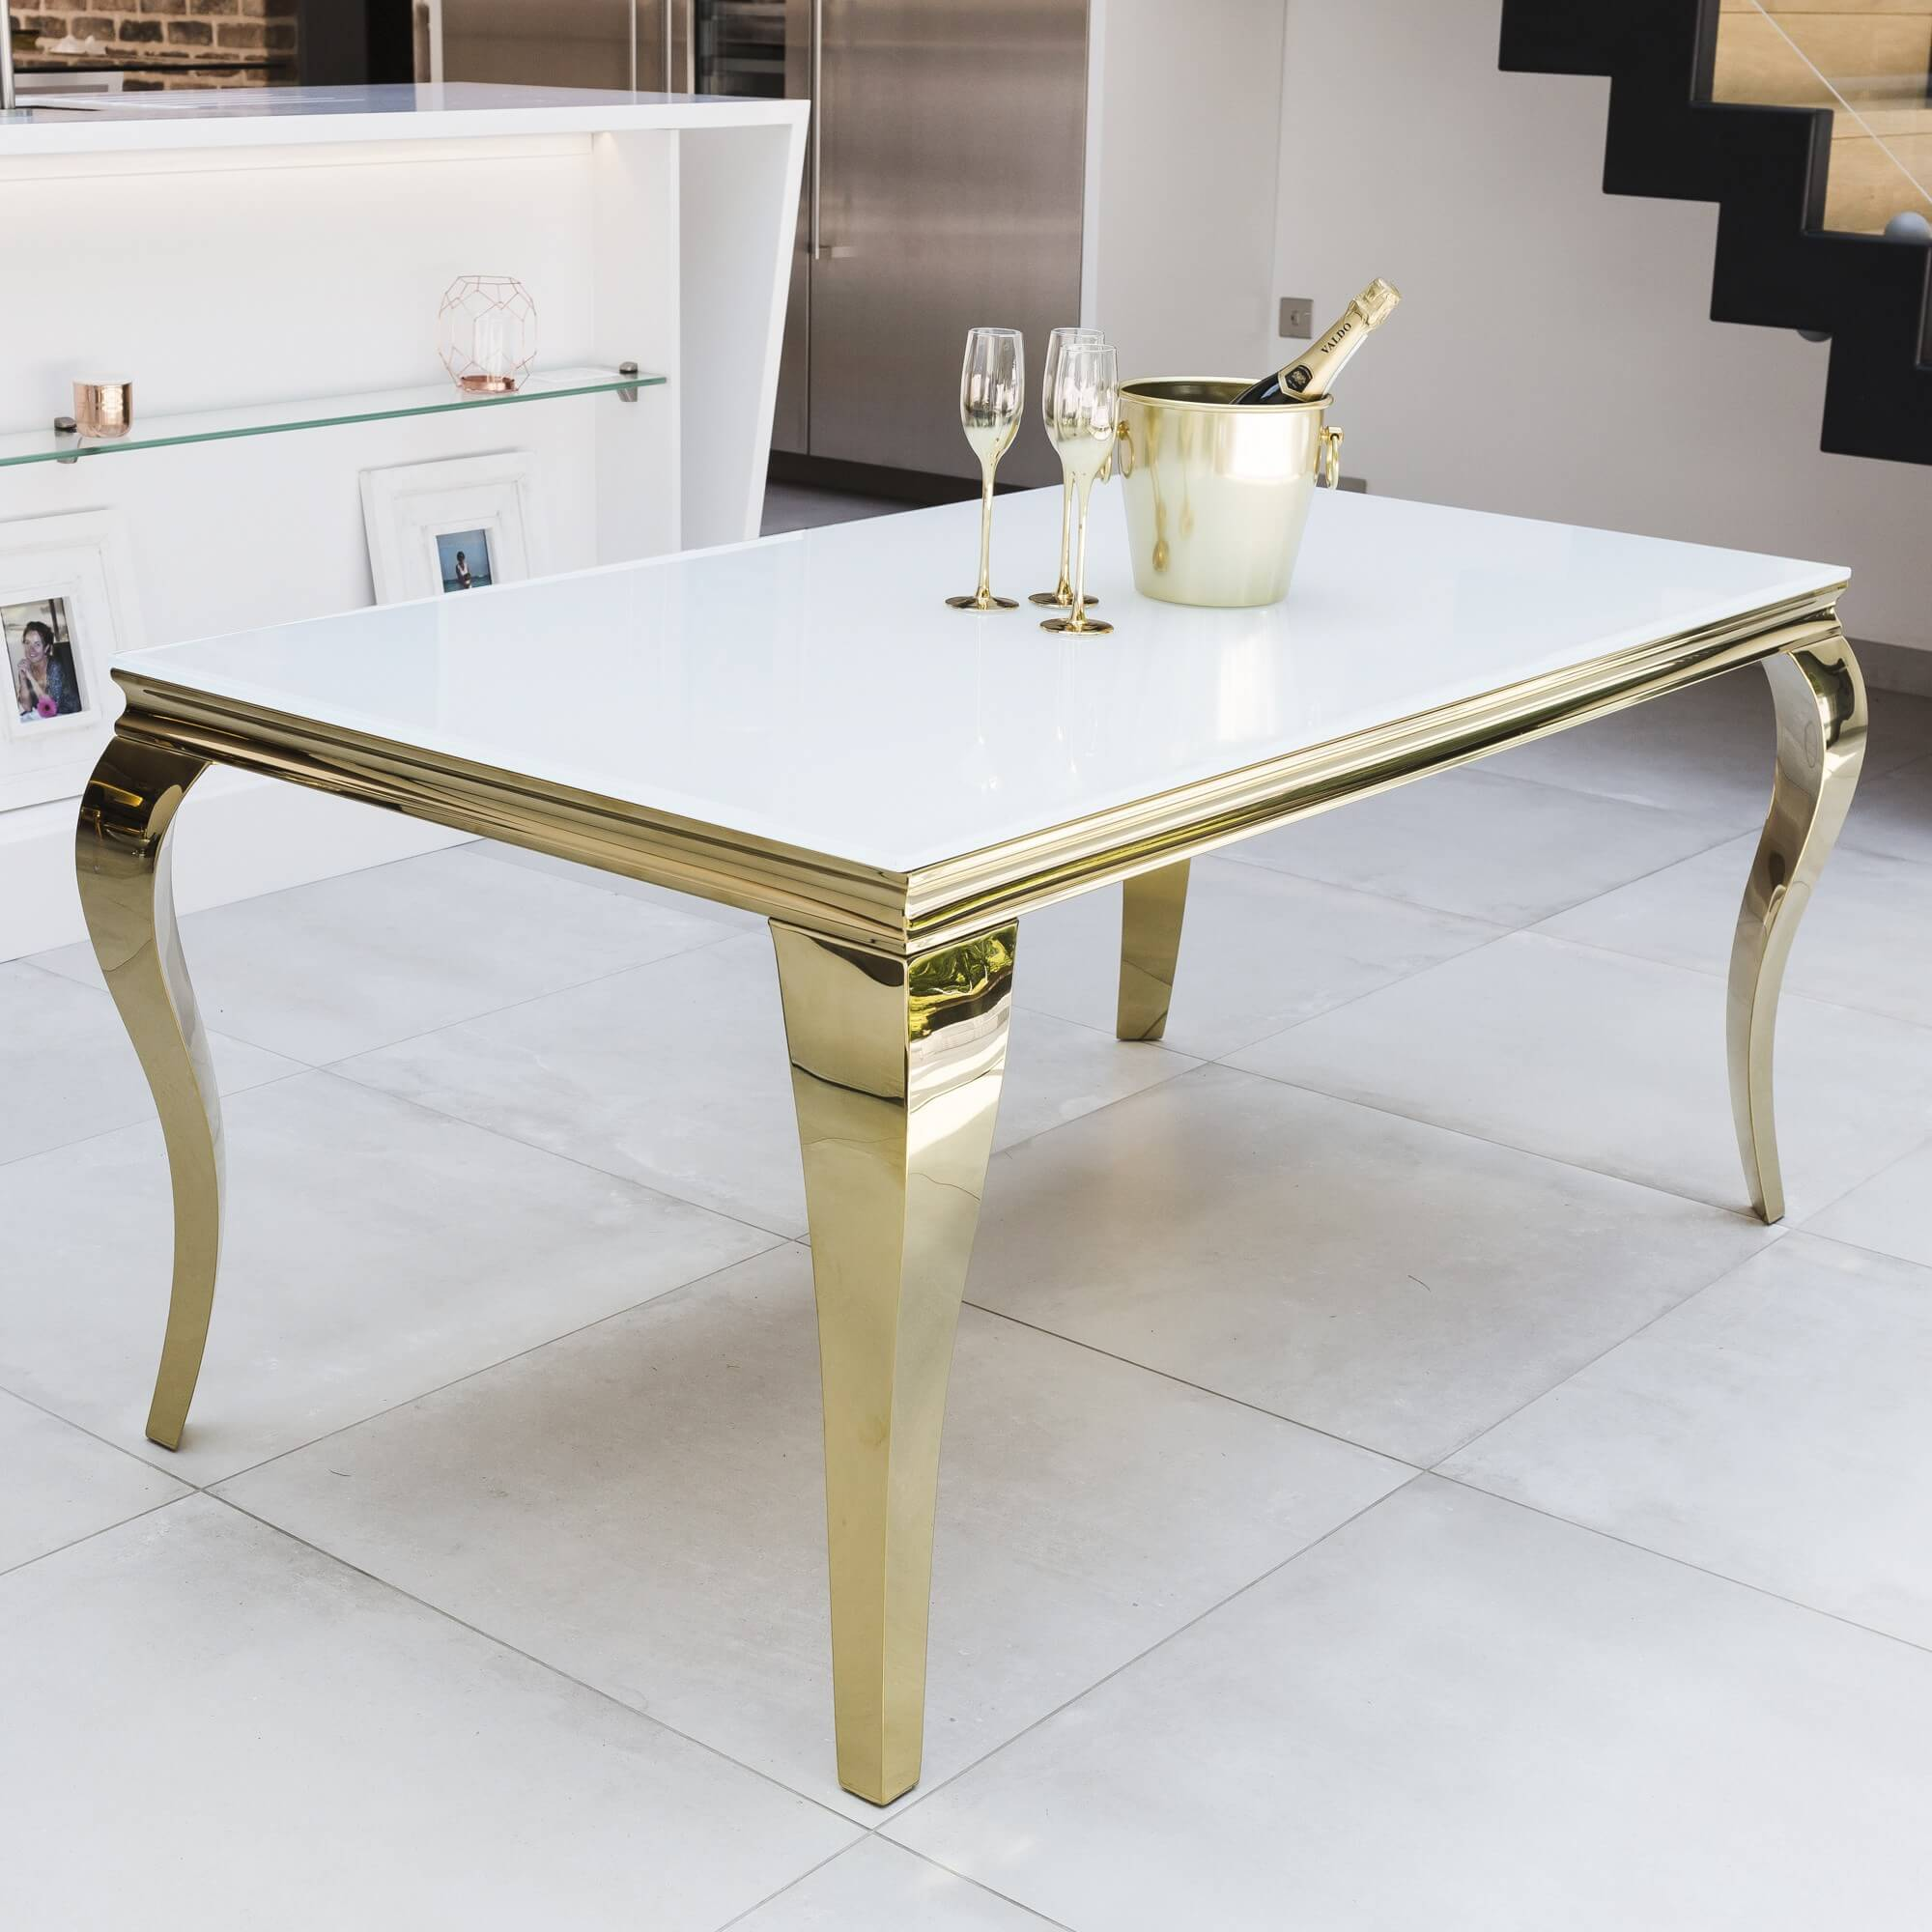 1.6M Louis Gold Polished Steel & Tempered Glass White Top Dining Table